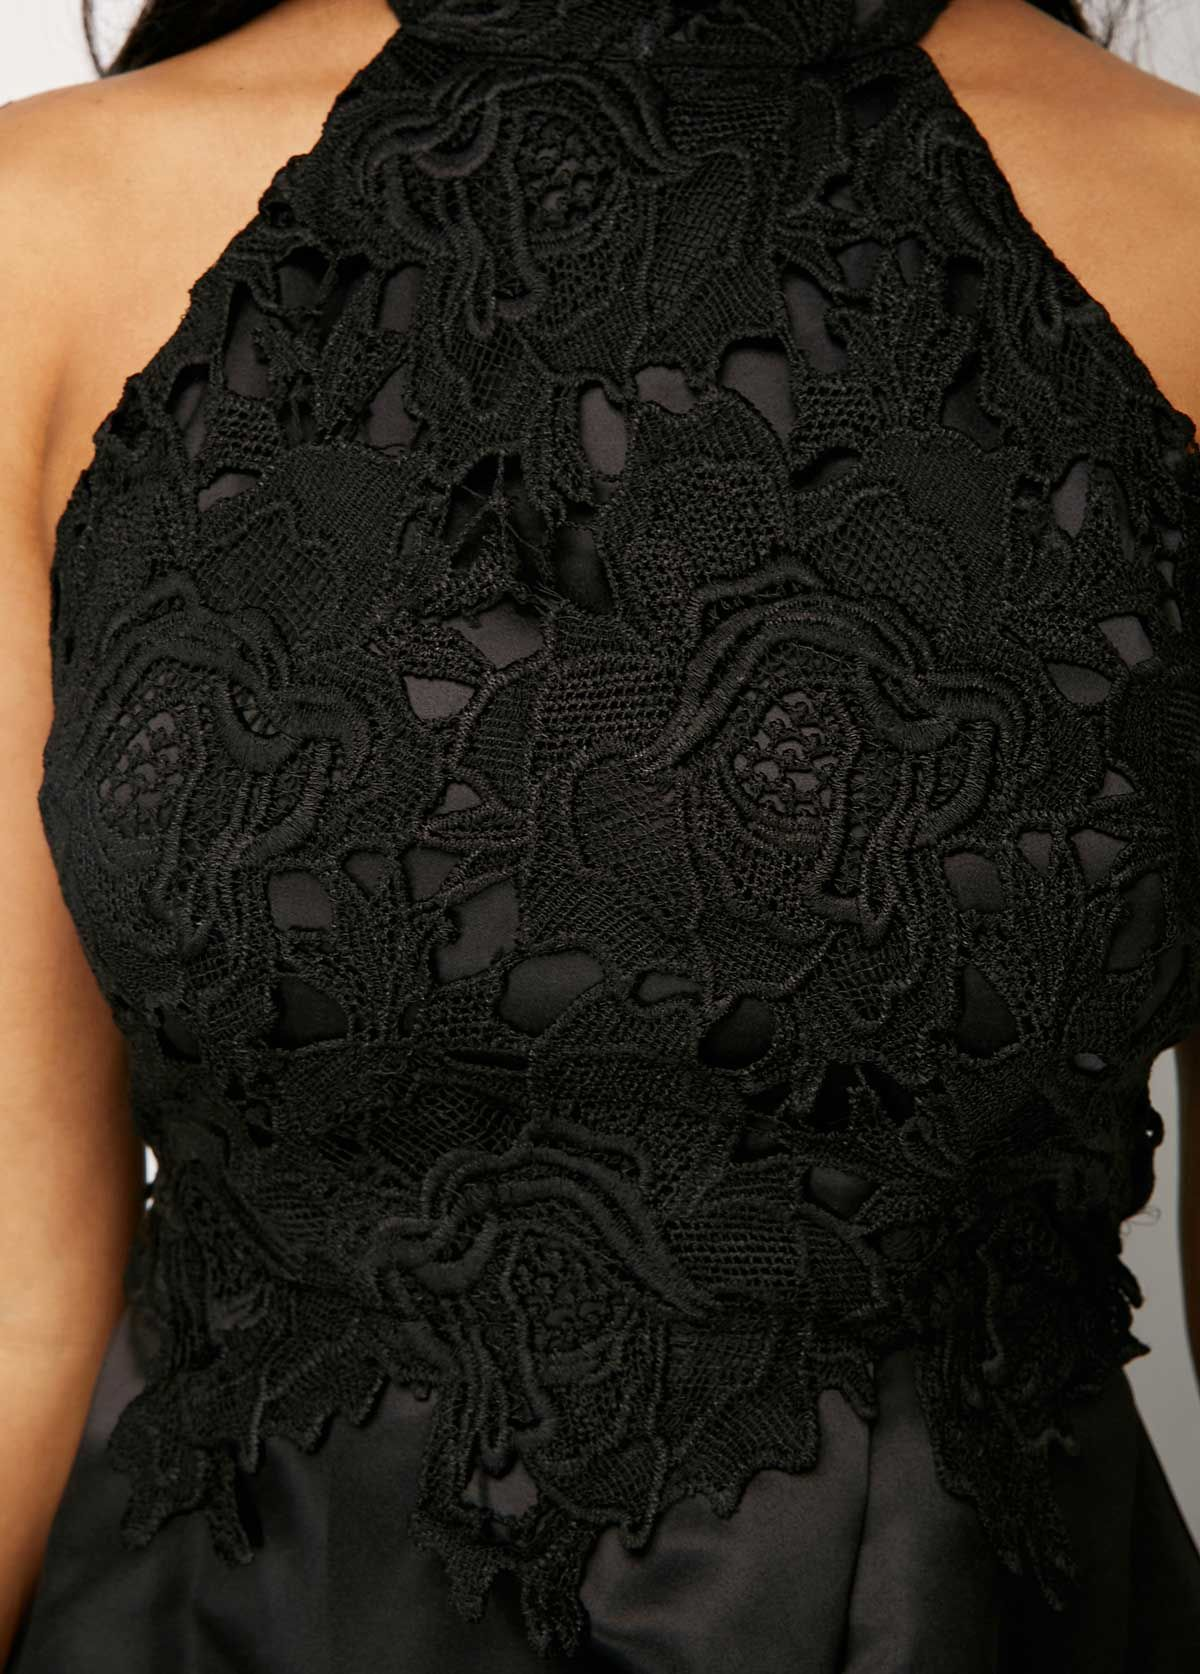 34037eccb50e4 Black Sleeveless Lace Panel High Low Dress